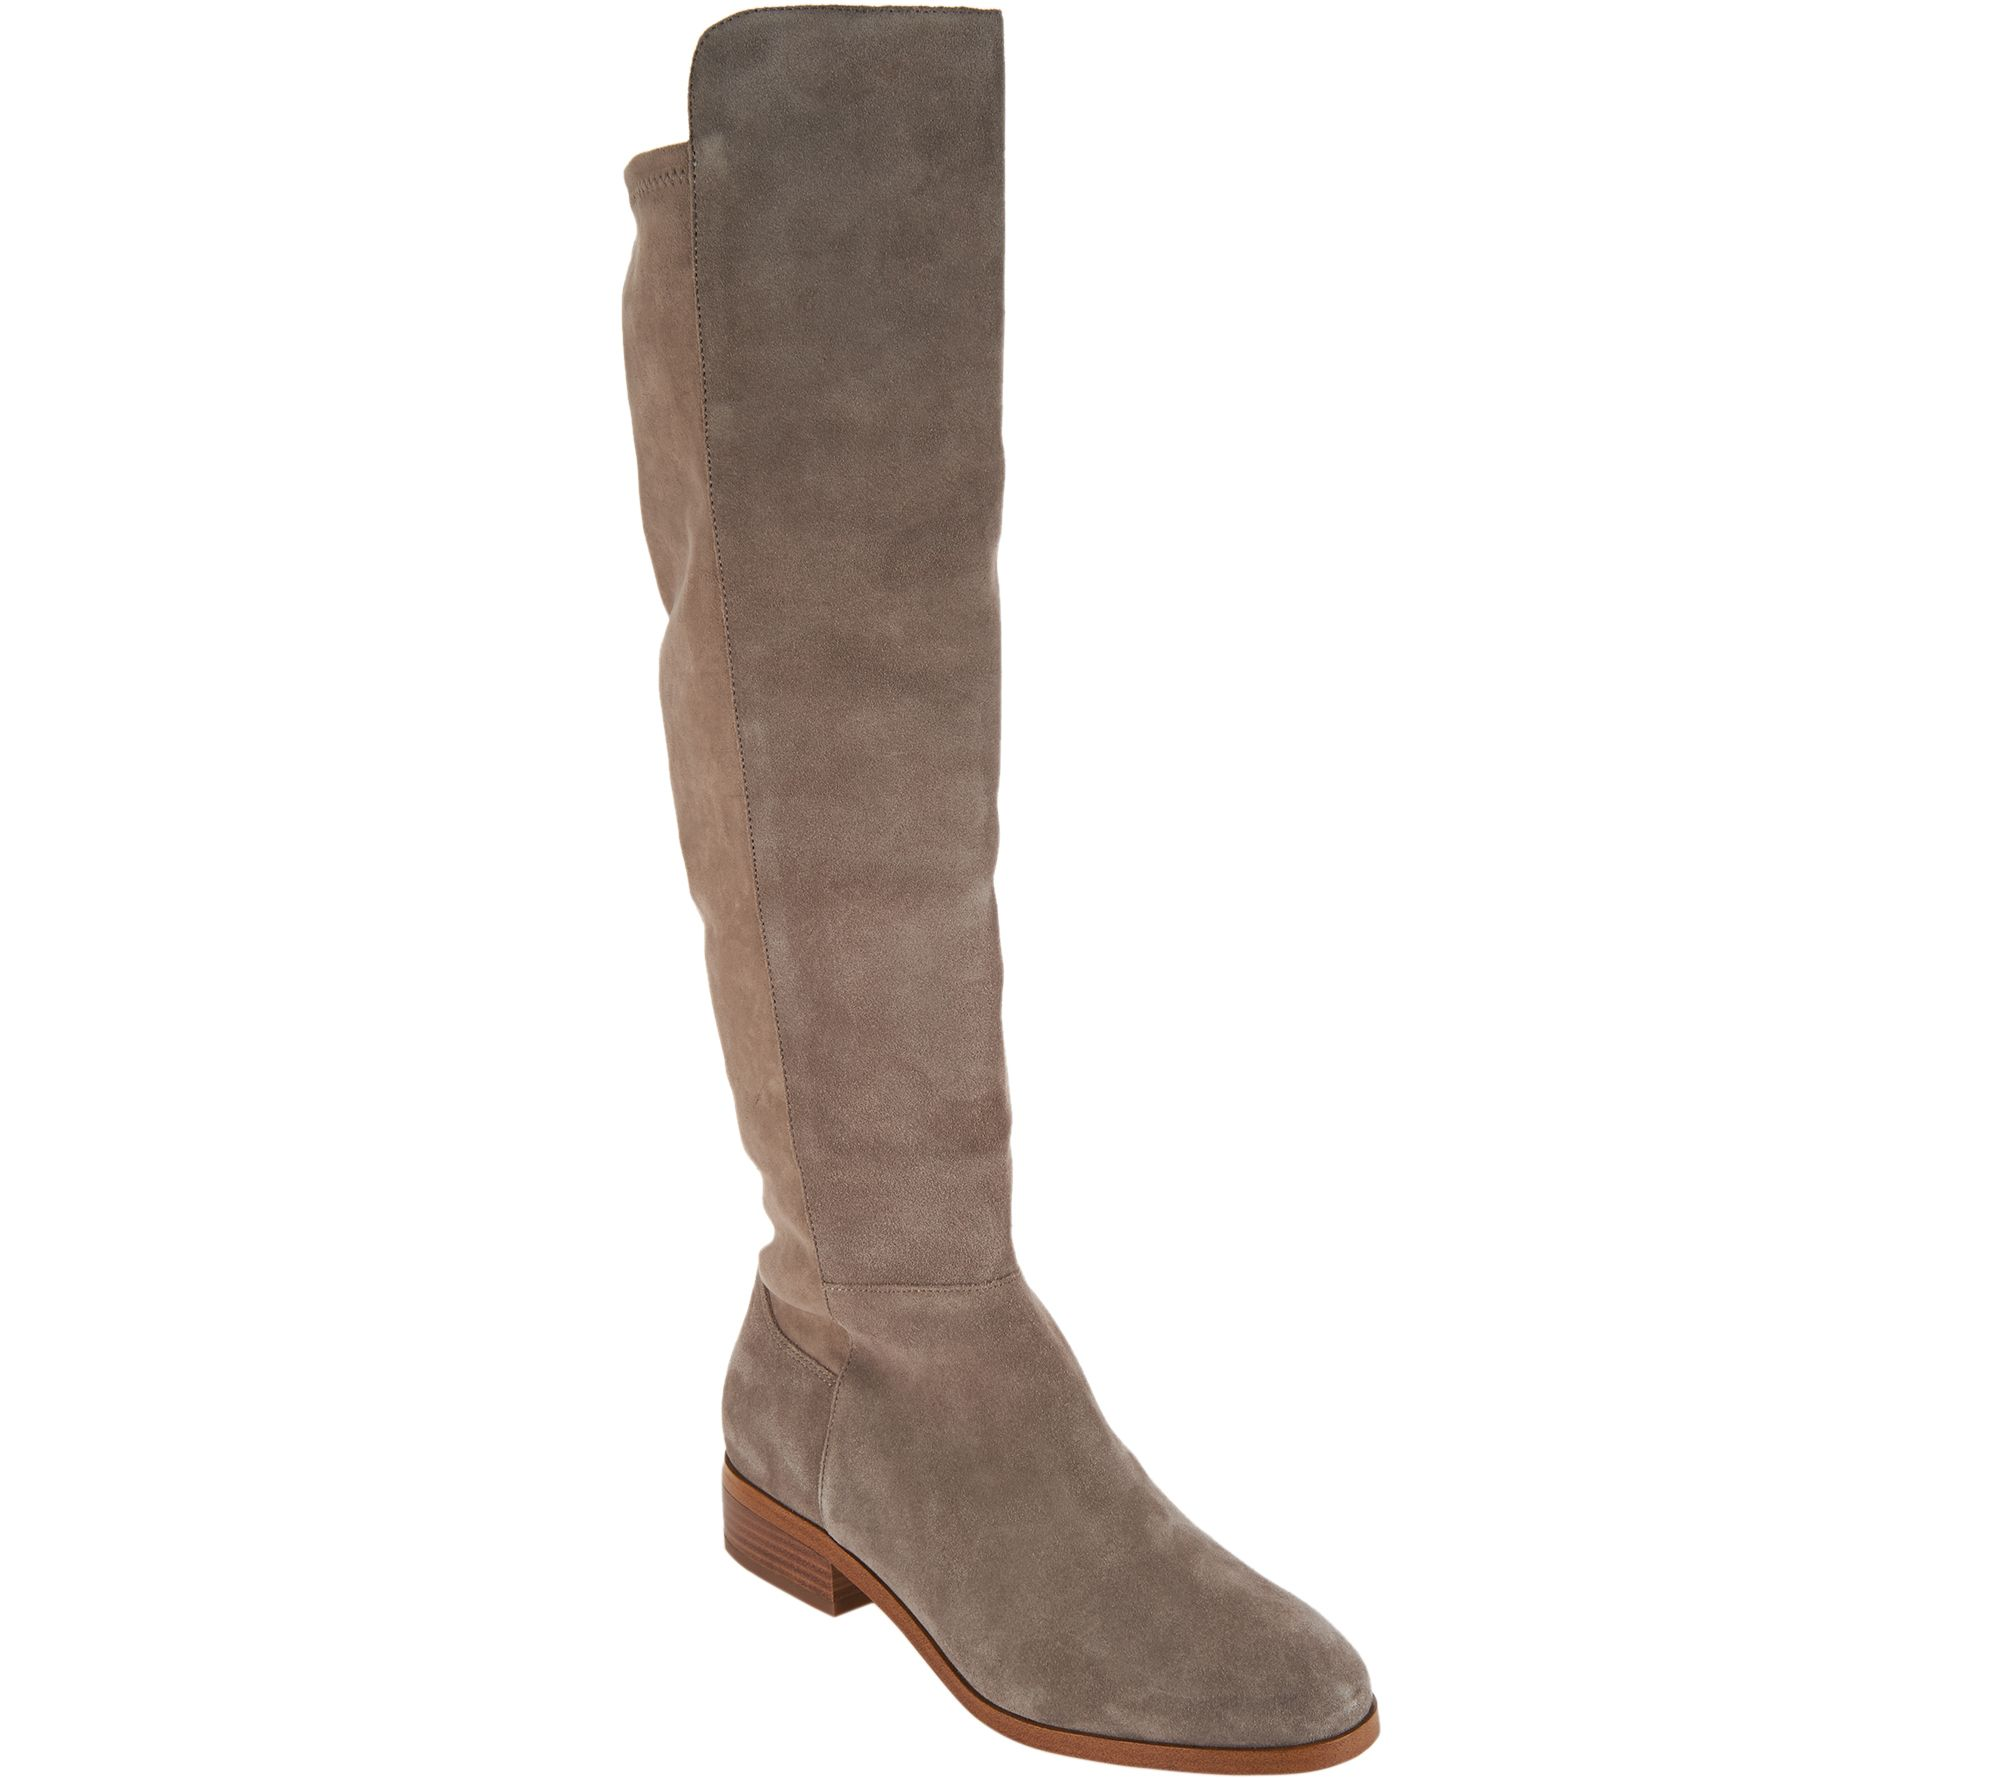 Sole Society Suede Tall Shaft Boots - Calypso buy cheap online aIjvNof